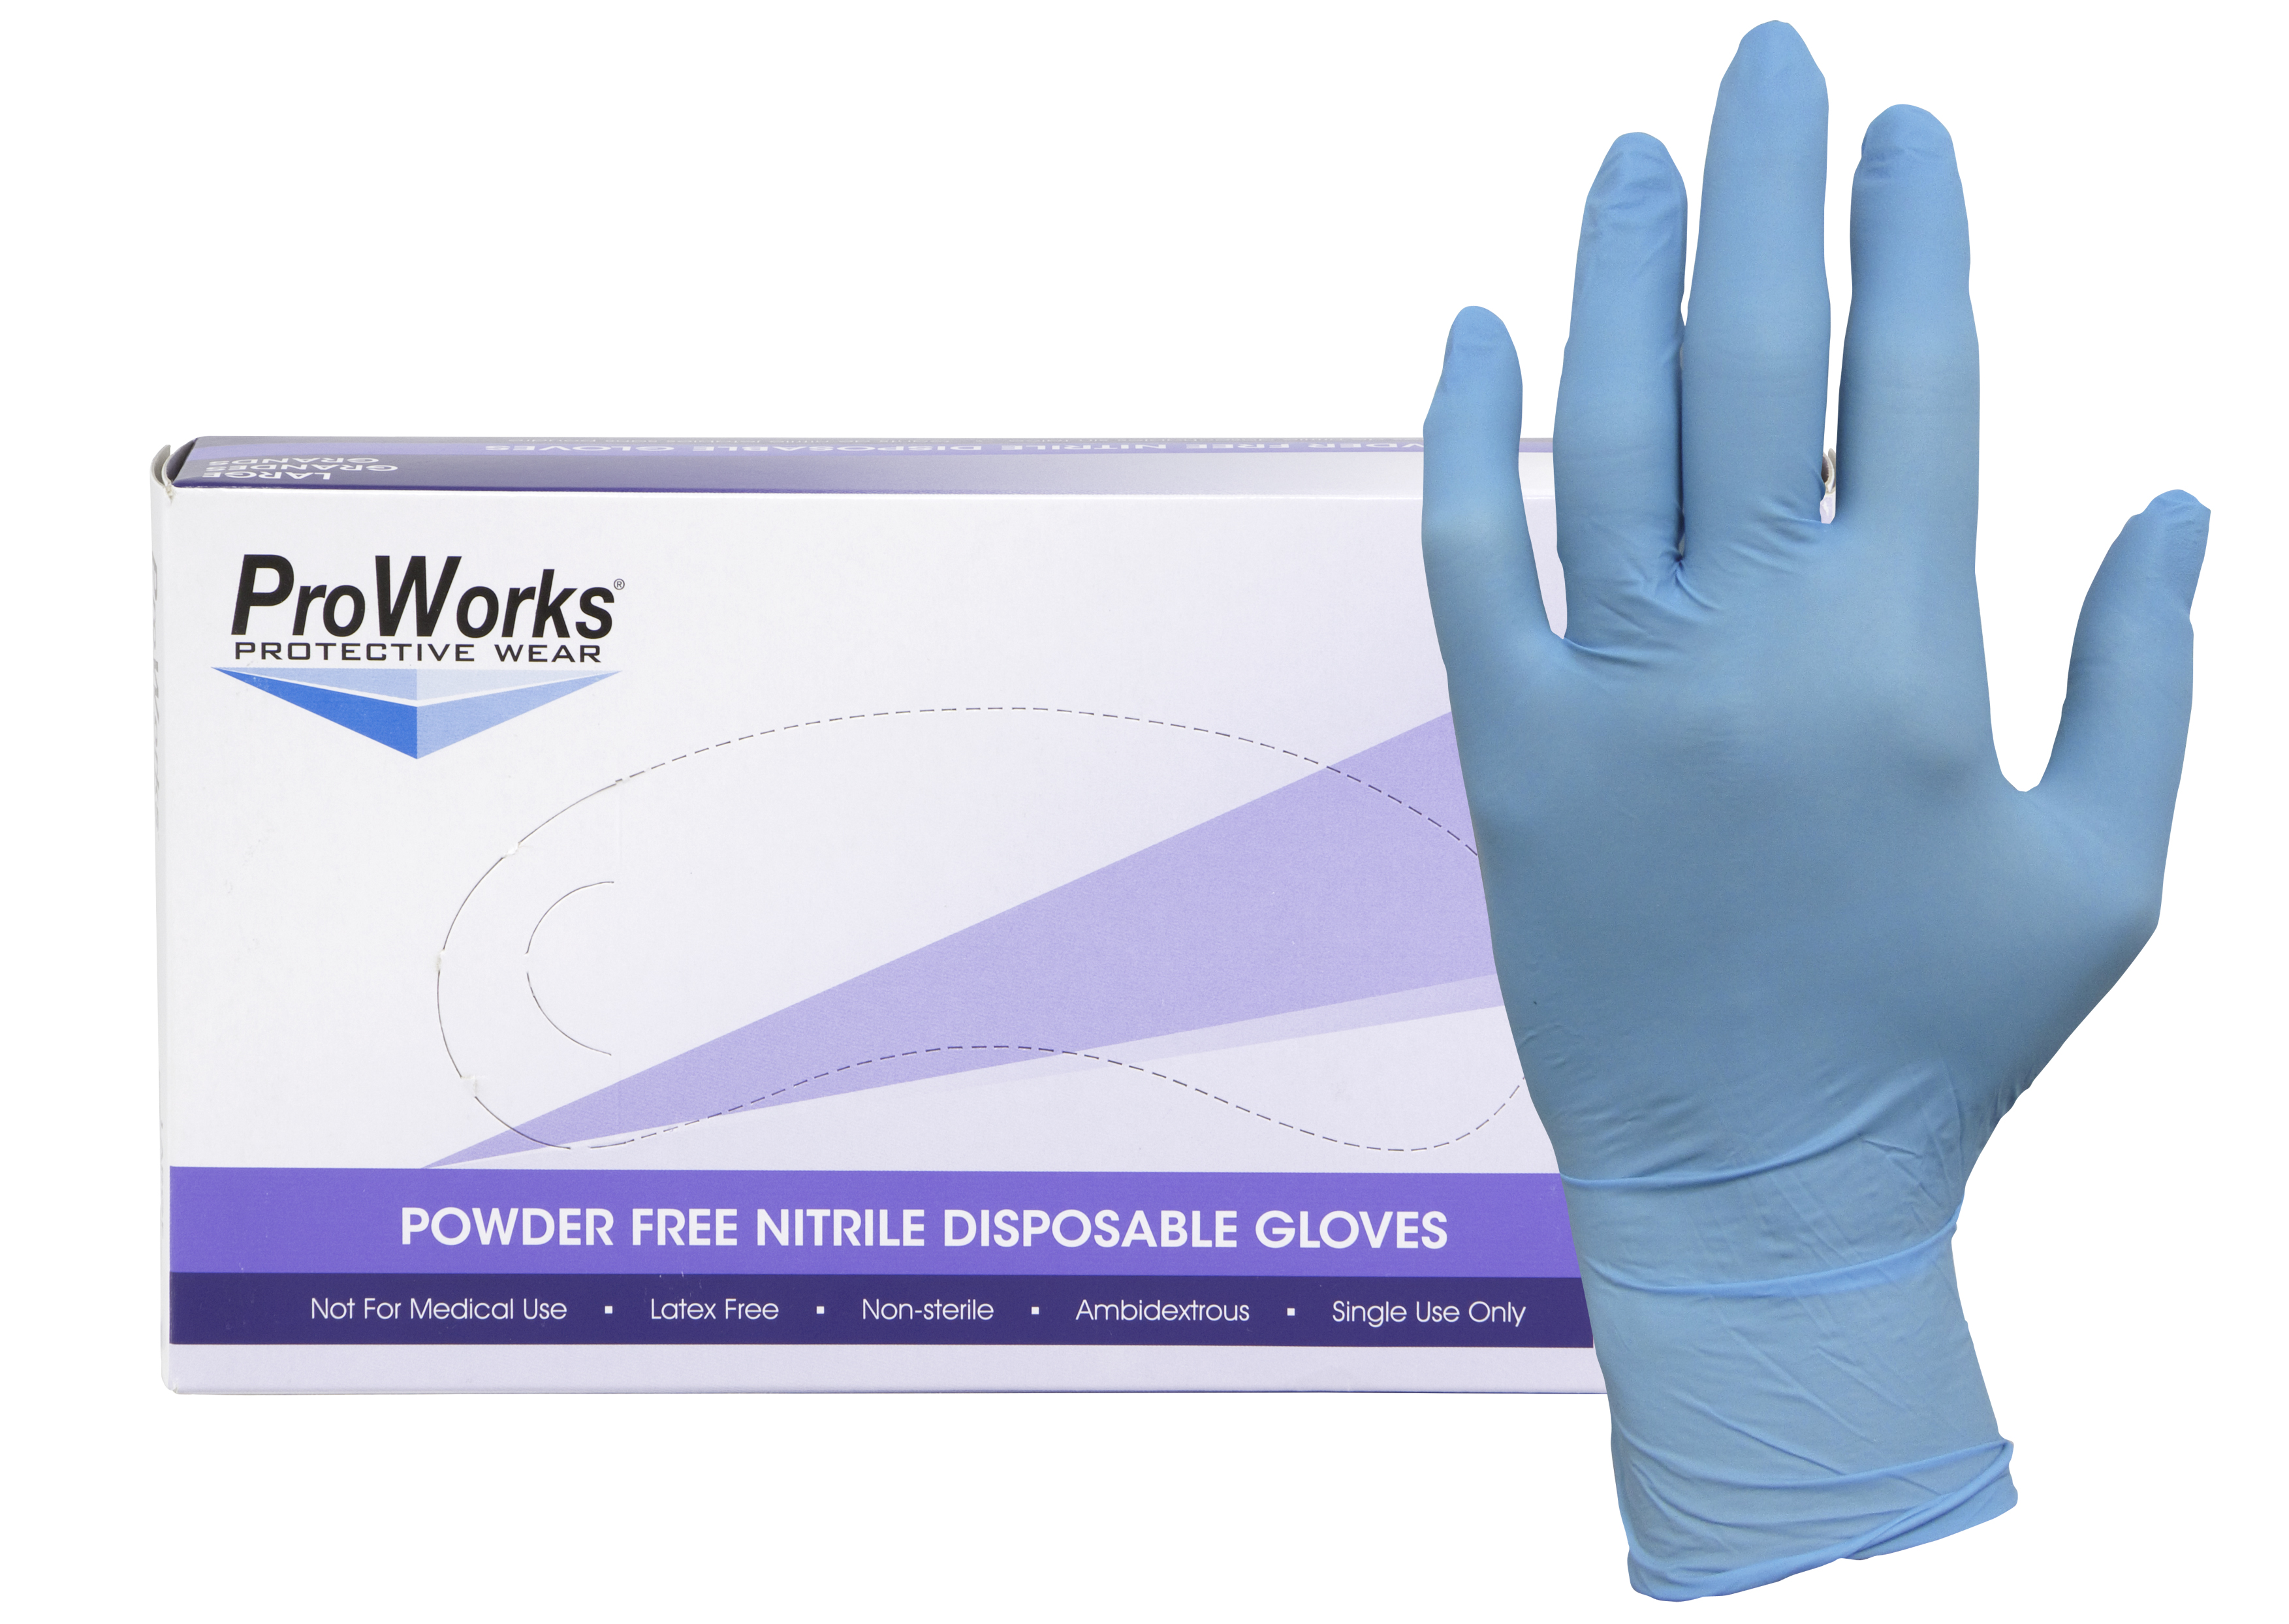 PicturesLogo/GLOVES.jpg